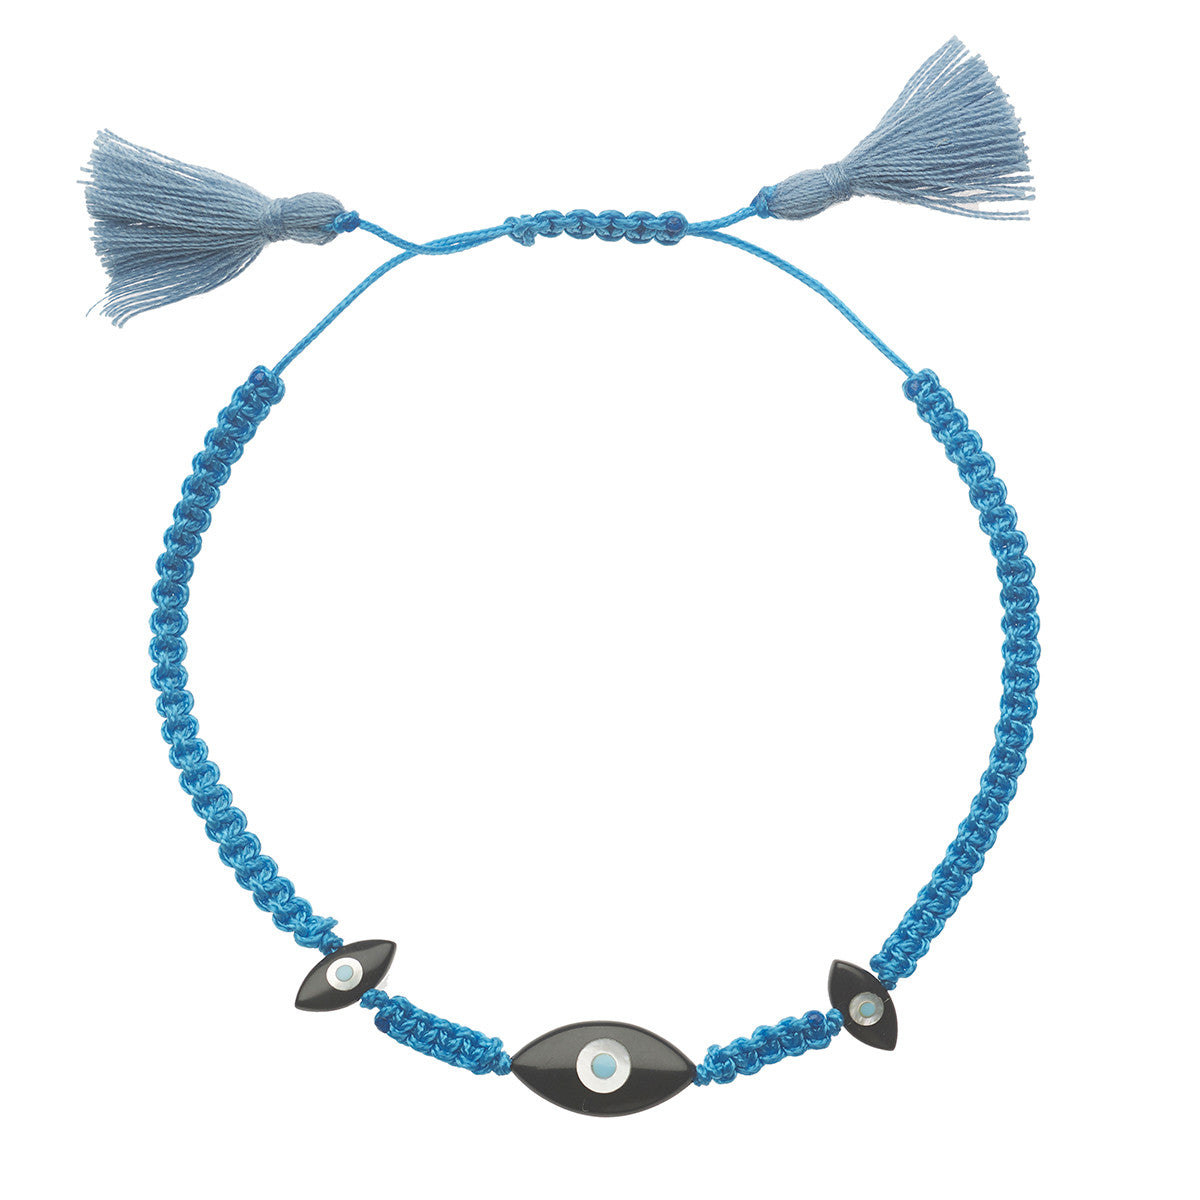 Summer Bracelet 10 Dark Sky Blue